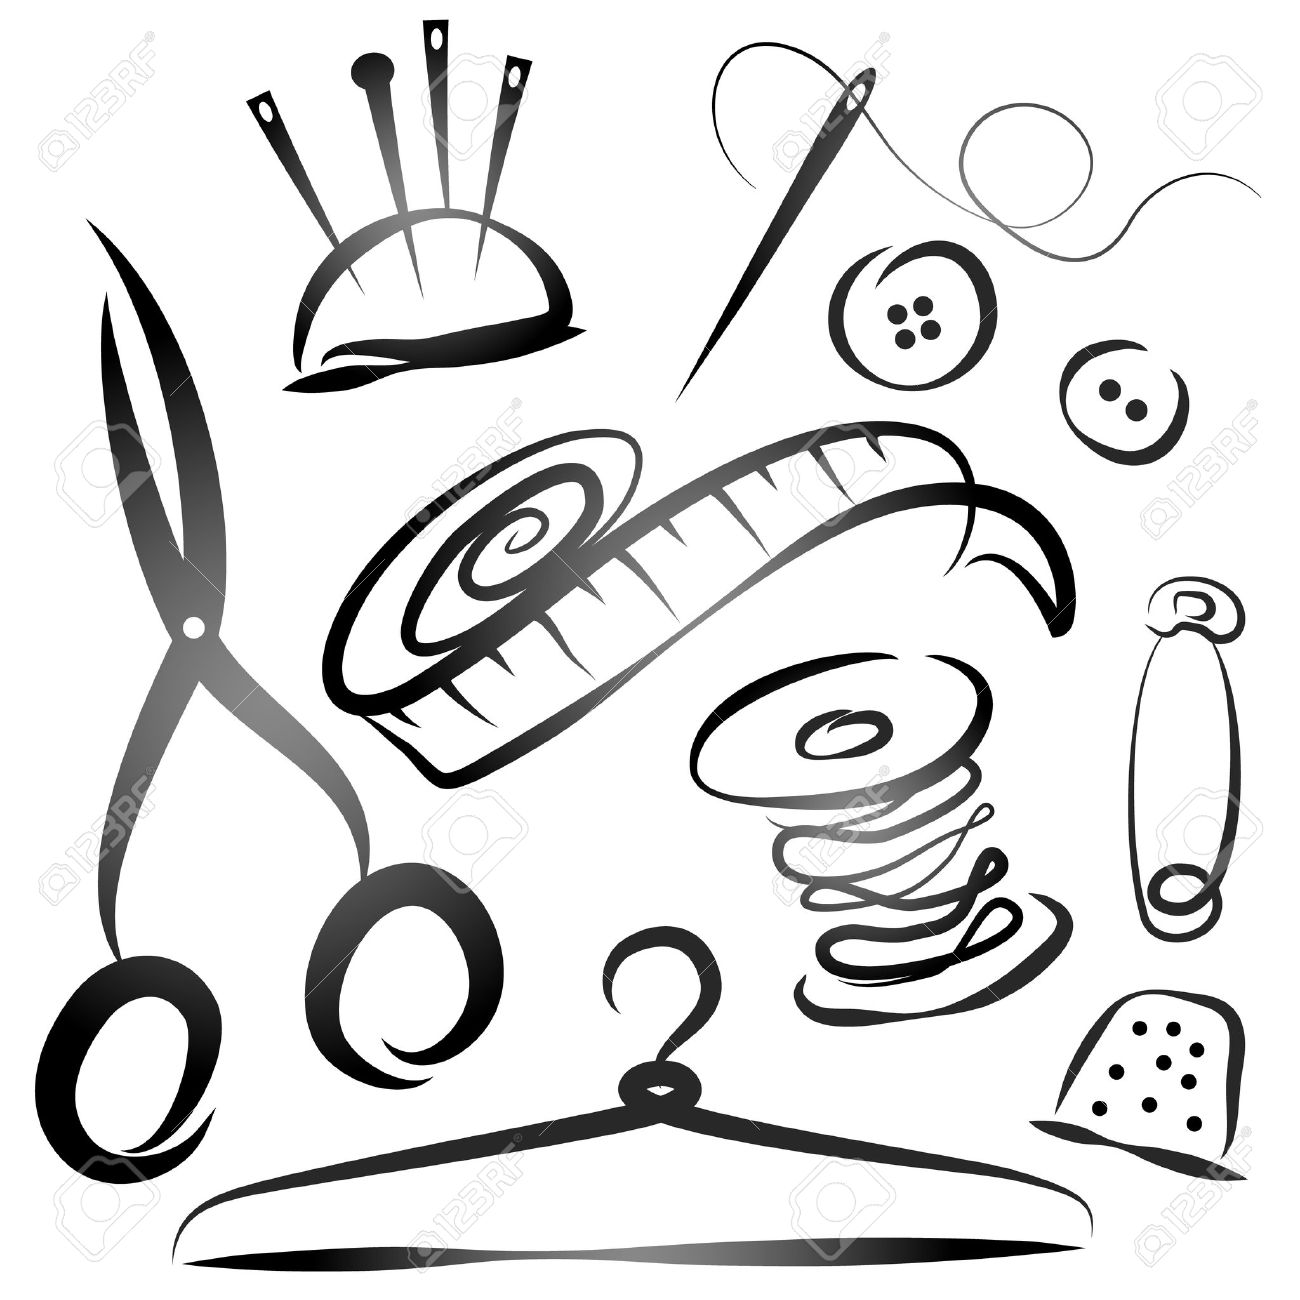 Tailor Tools Clipart